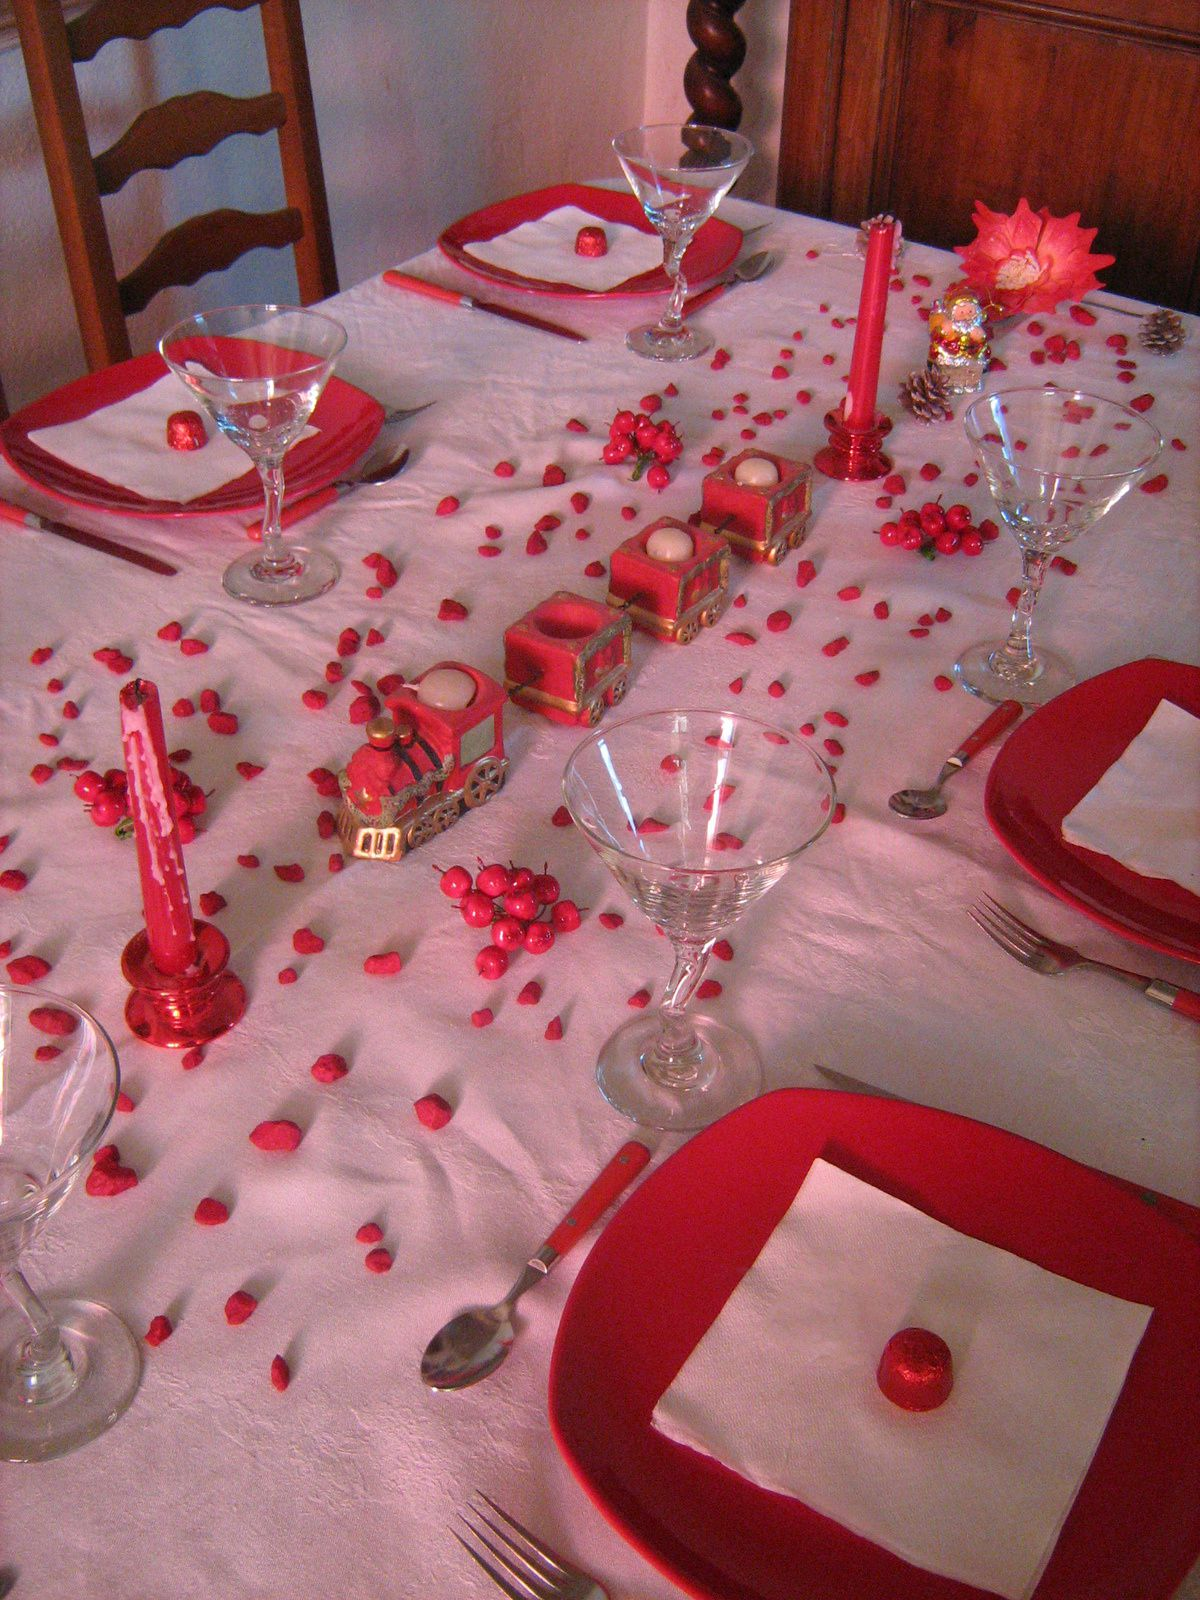 Table de noel en rouge et blanc 1 table et d co d 39 estelle for Decoration de noel rouge et blanc